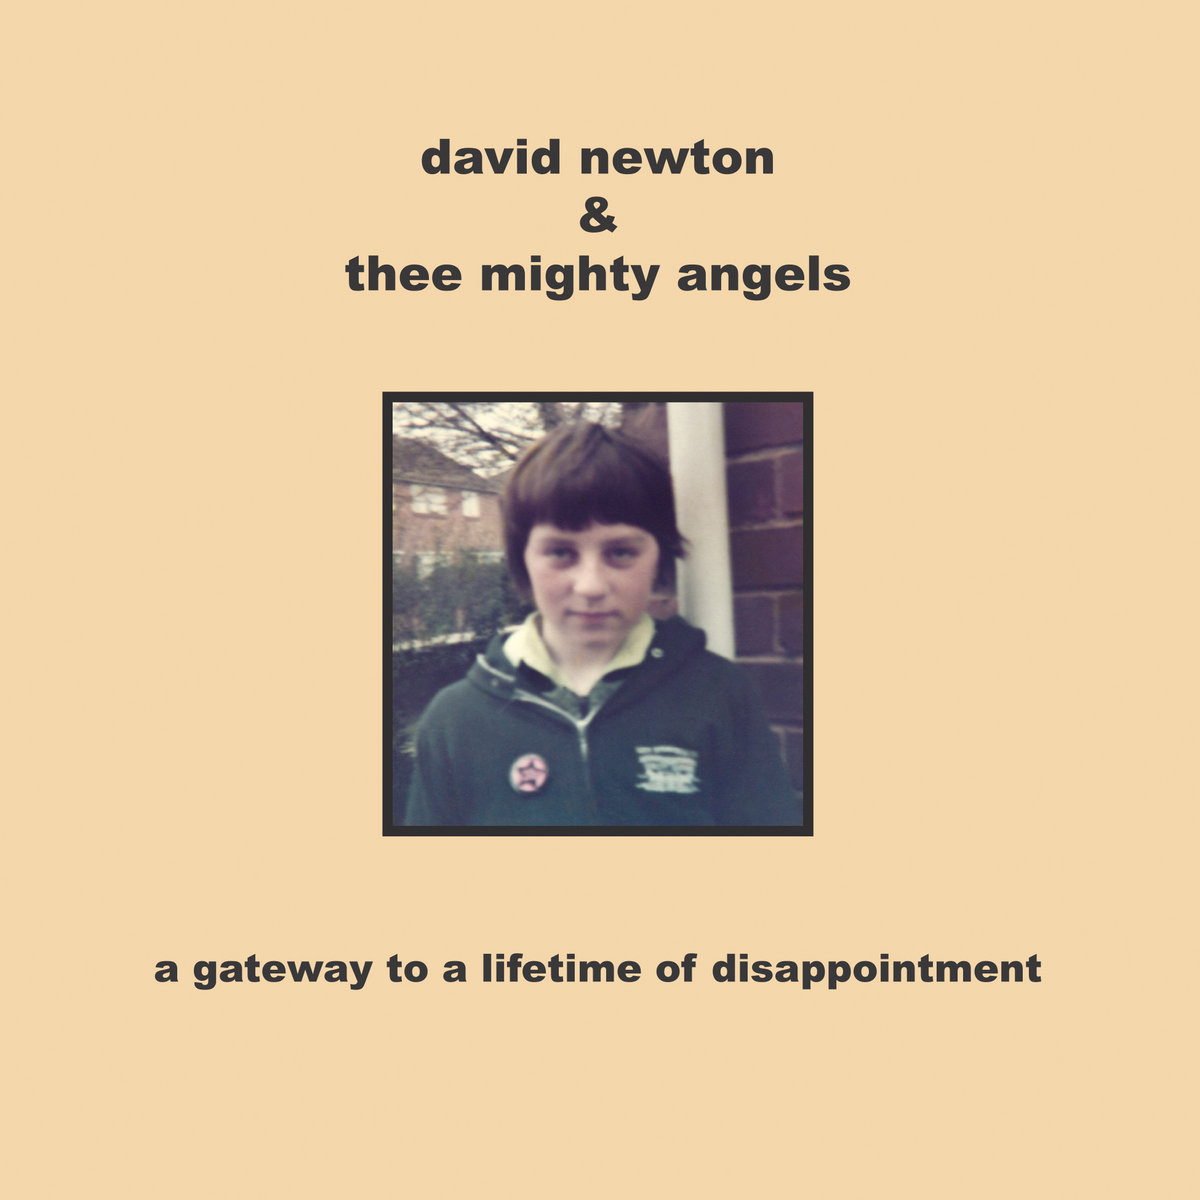 News – David Newton & Thee Mighty Angels – A gateway to a lifetime of disappointment